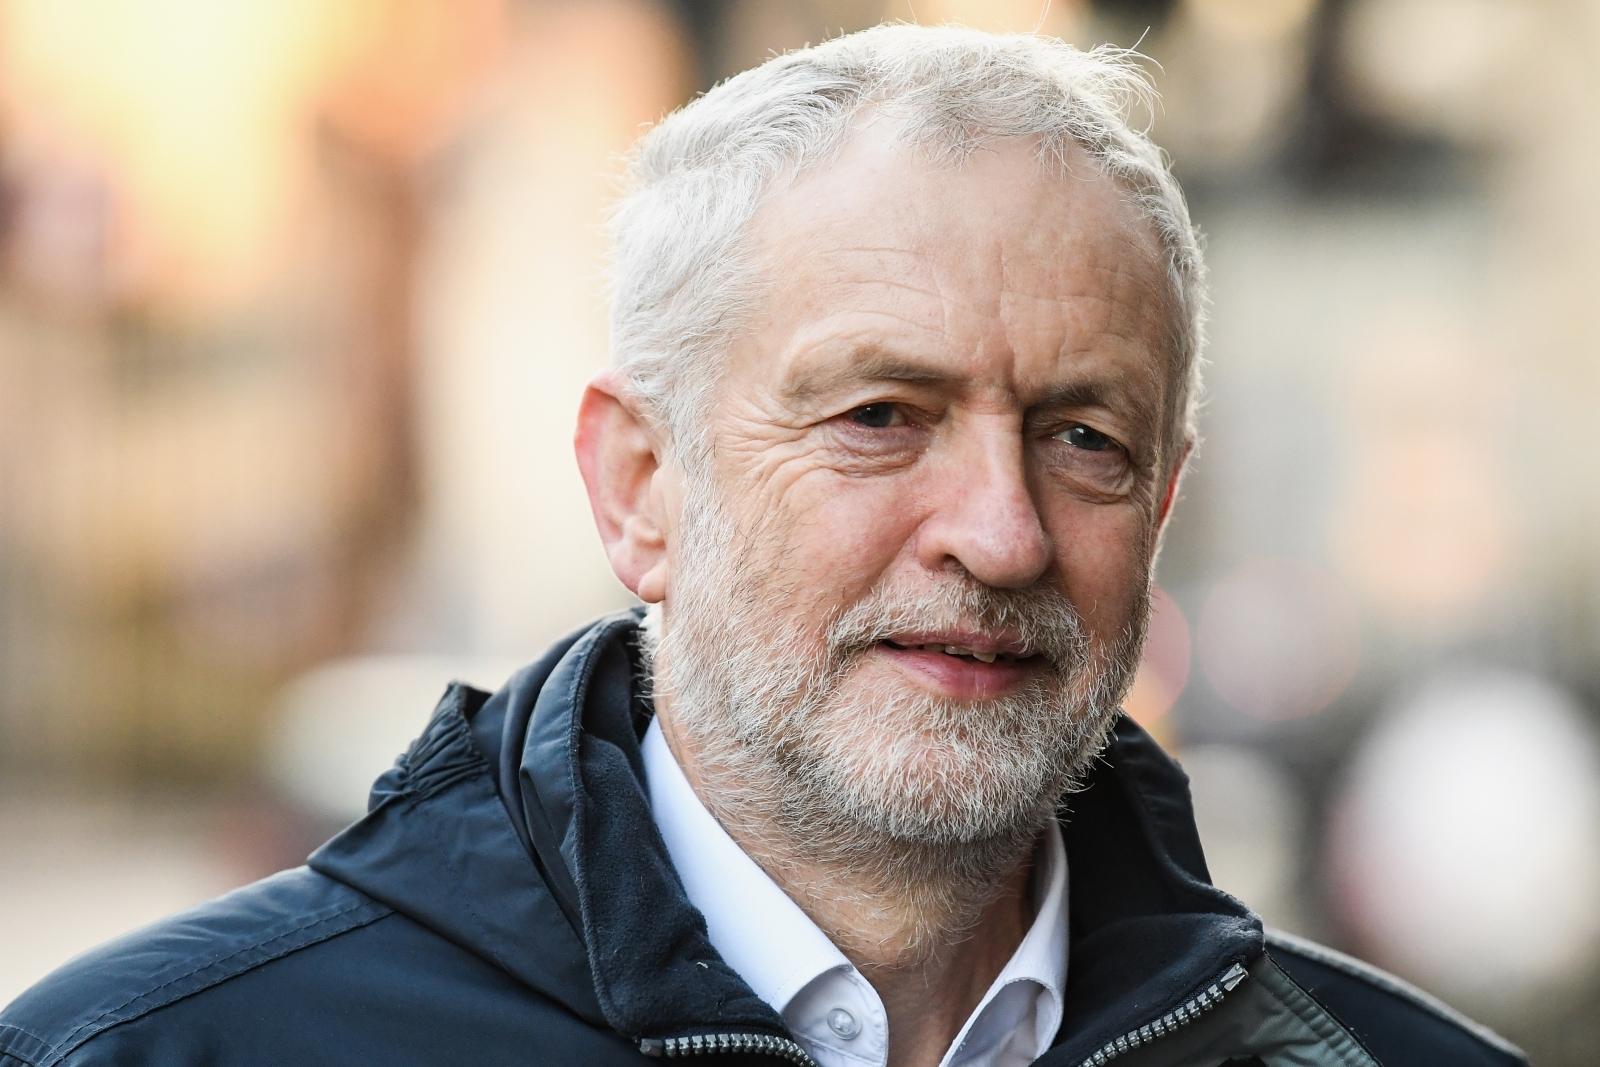 Jeremy Corbyn Meets The New Scottish Labour Leader For The First Time In Glasgow